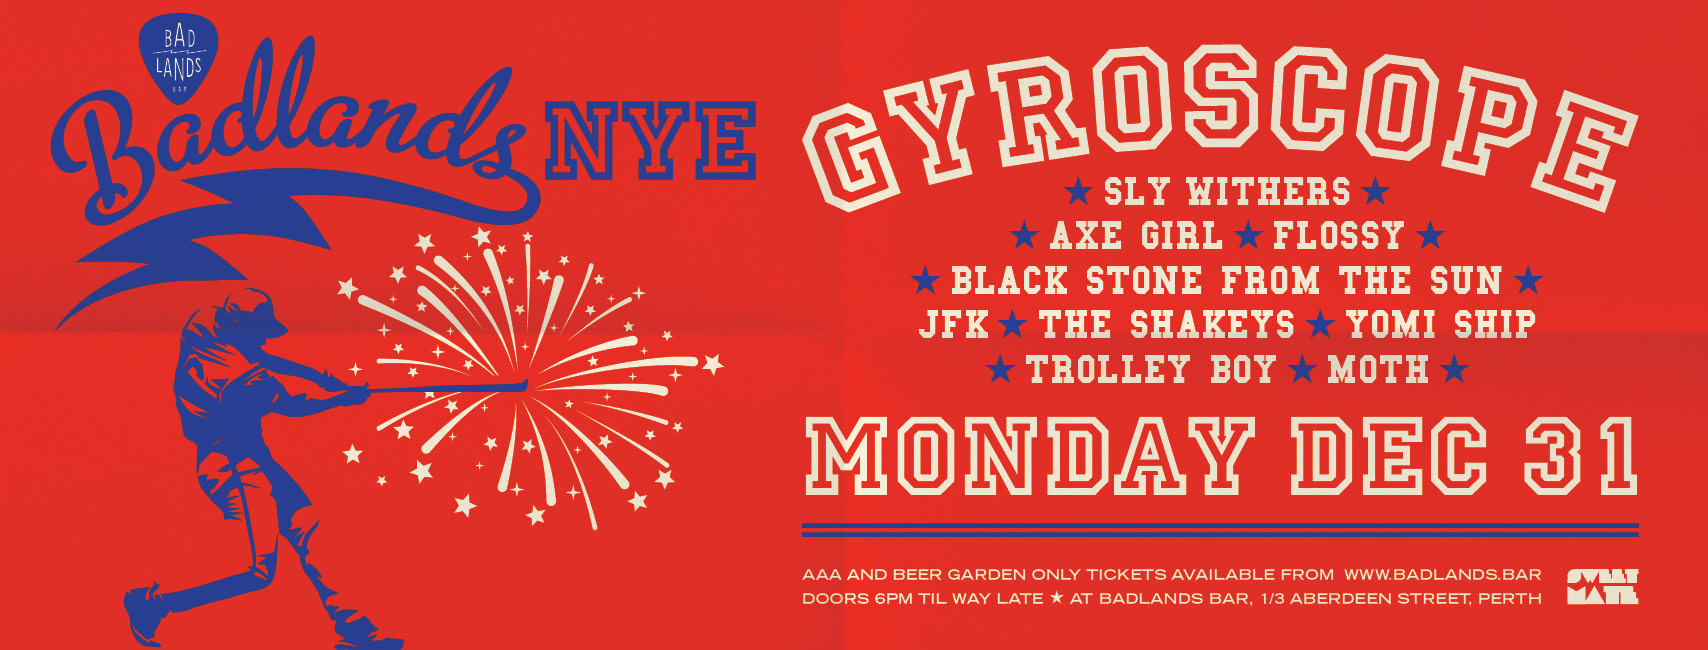 Badlands NYE – feat. Gyroscope, Sly Withers, Axe Girl and many more